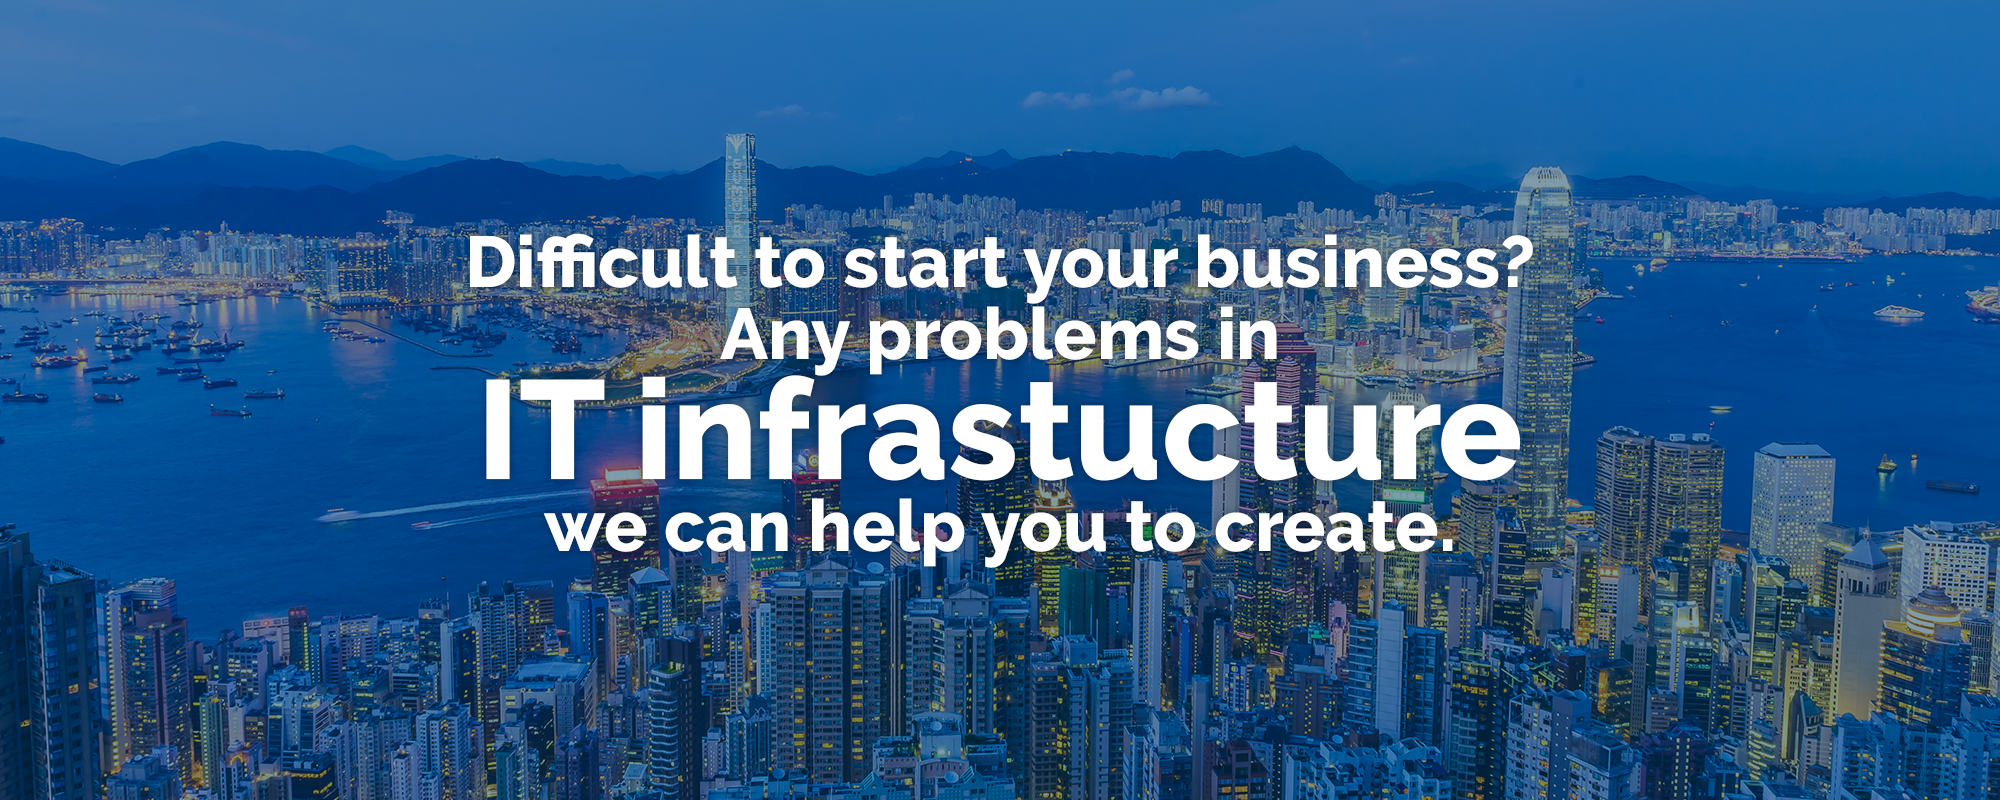 Difficult to start your business? Any problems in IT infrastucture we can help you to create.